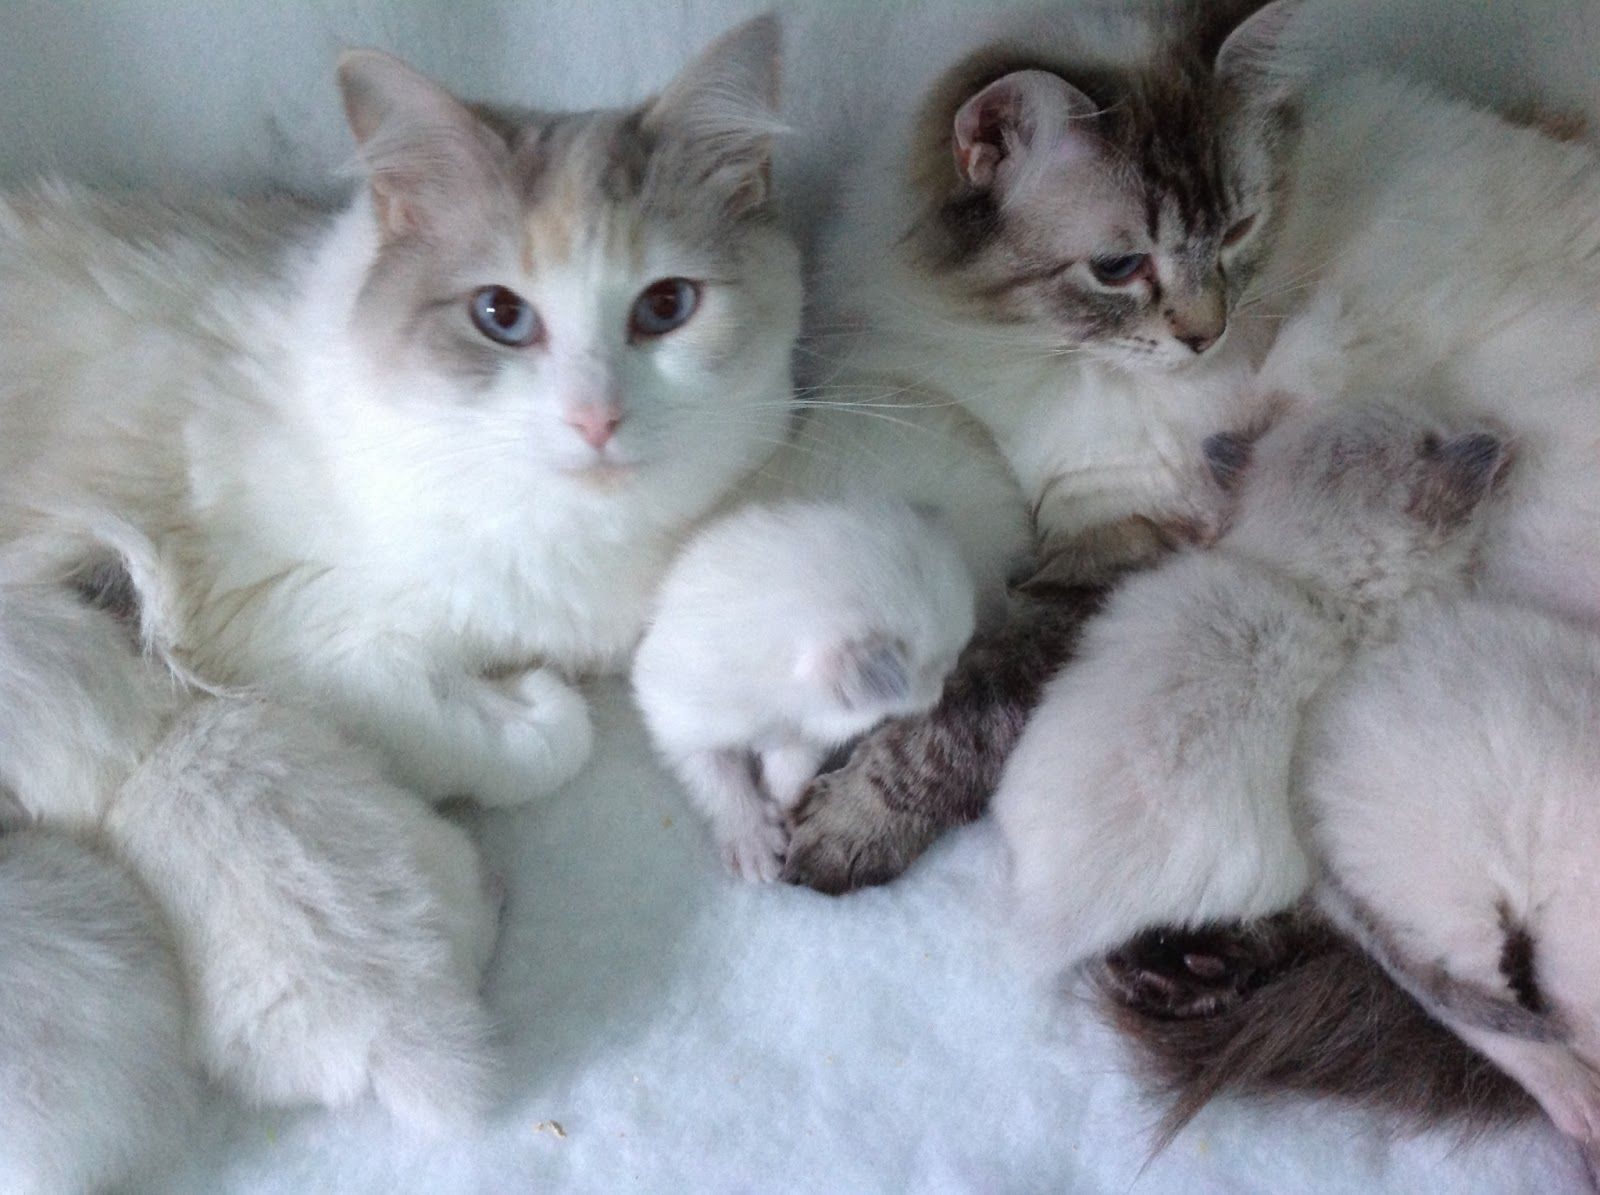 Tz Katz Ragdoll Cats And Kittens They Grow So Fast Tinks Baby Is A Week Old And The Others Are Coming Up 3 In 2020 Ragdoll Cat Cats And Kittens Cats